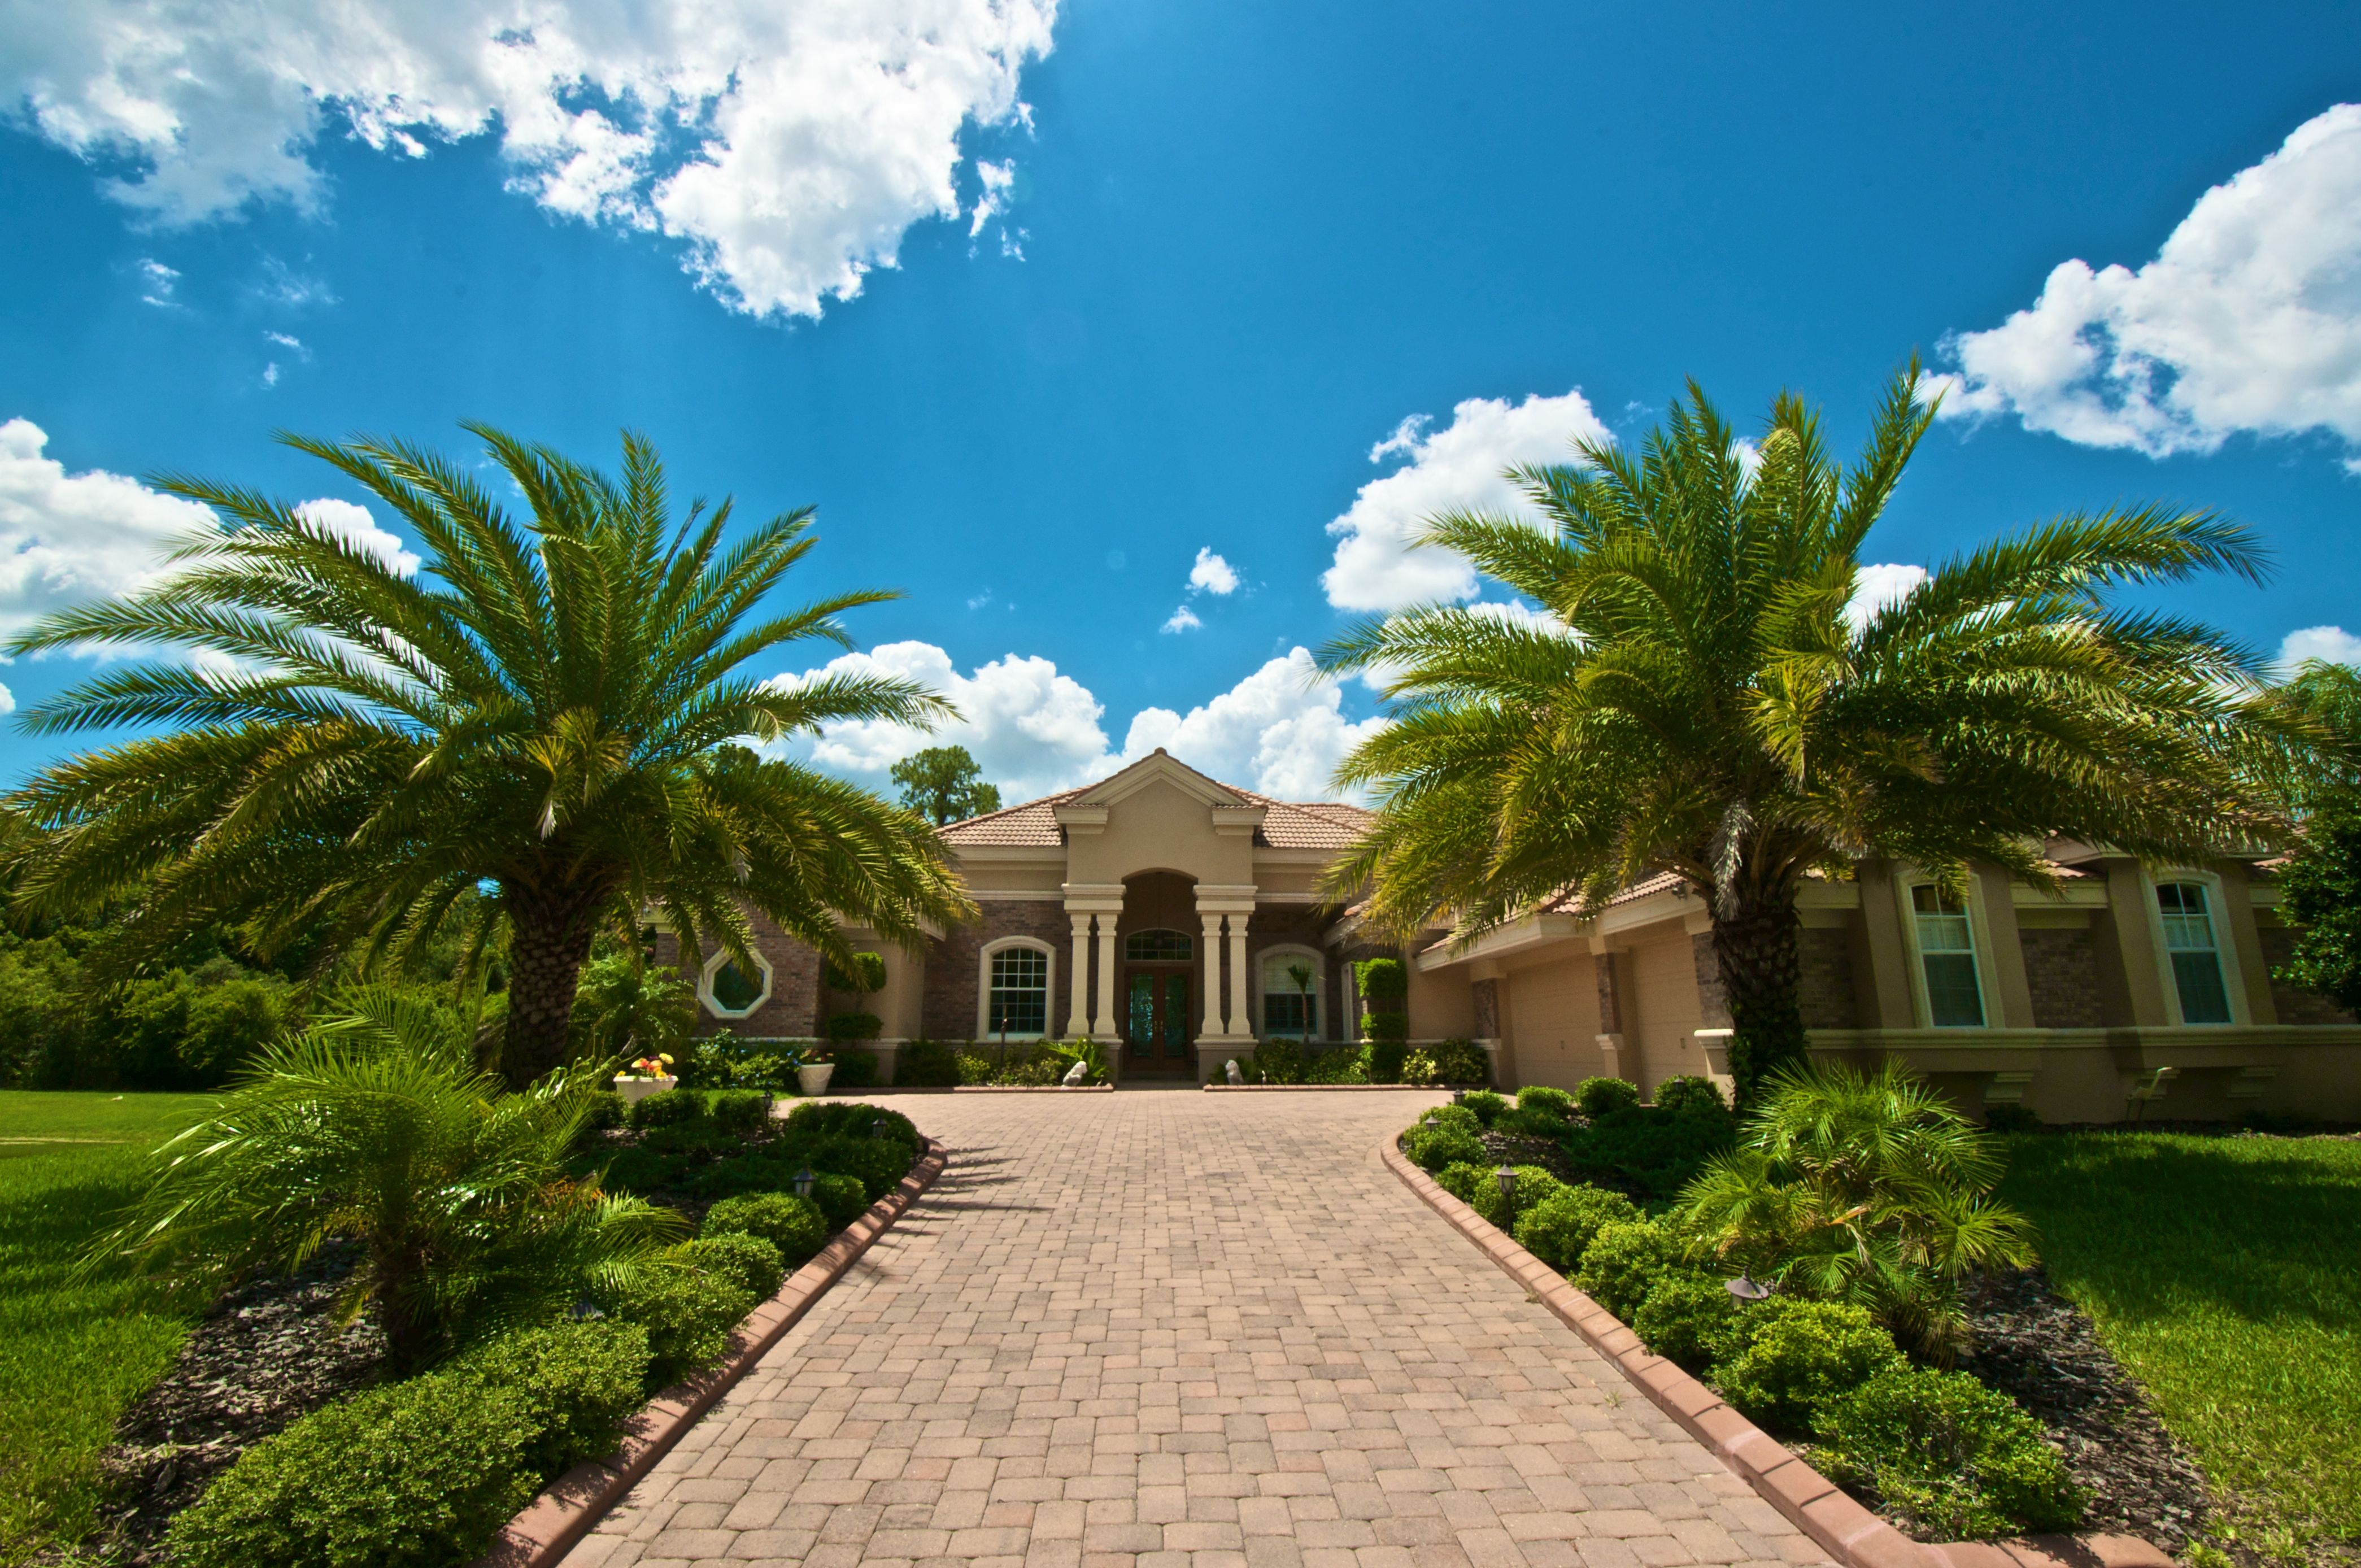 Located In Lansbrook, A Golf And Boating Community Bordering On Lake Tarpon. This Beautiful Home With Tile Roof, Built In 2005 By Mark Maconi. Has Four Bedrooms, Four Baths, Oversized Three Car Garage, Library, Living Room, Dining Room, Bonus Room, Family Room With Fireplace, Media Room With Surround Sound,